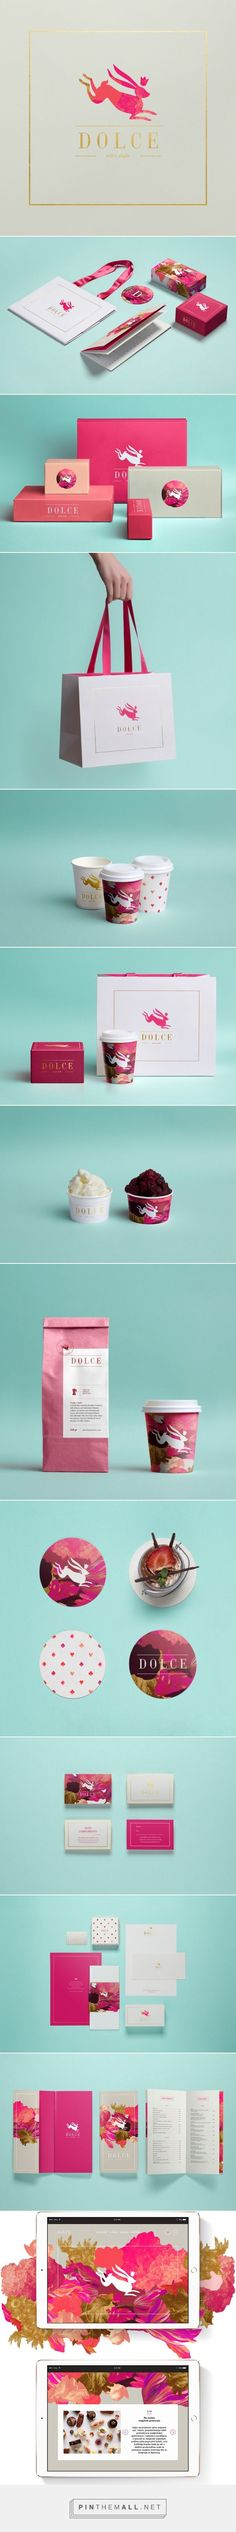 Dolce Branding by Metaklinika | Fivestar Branding – Design and Branding Agency…